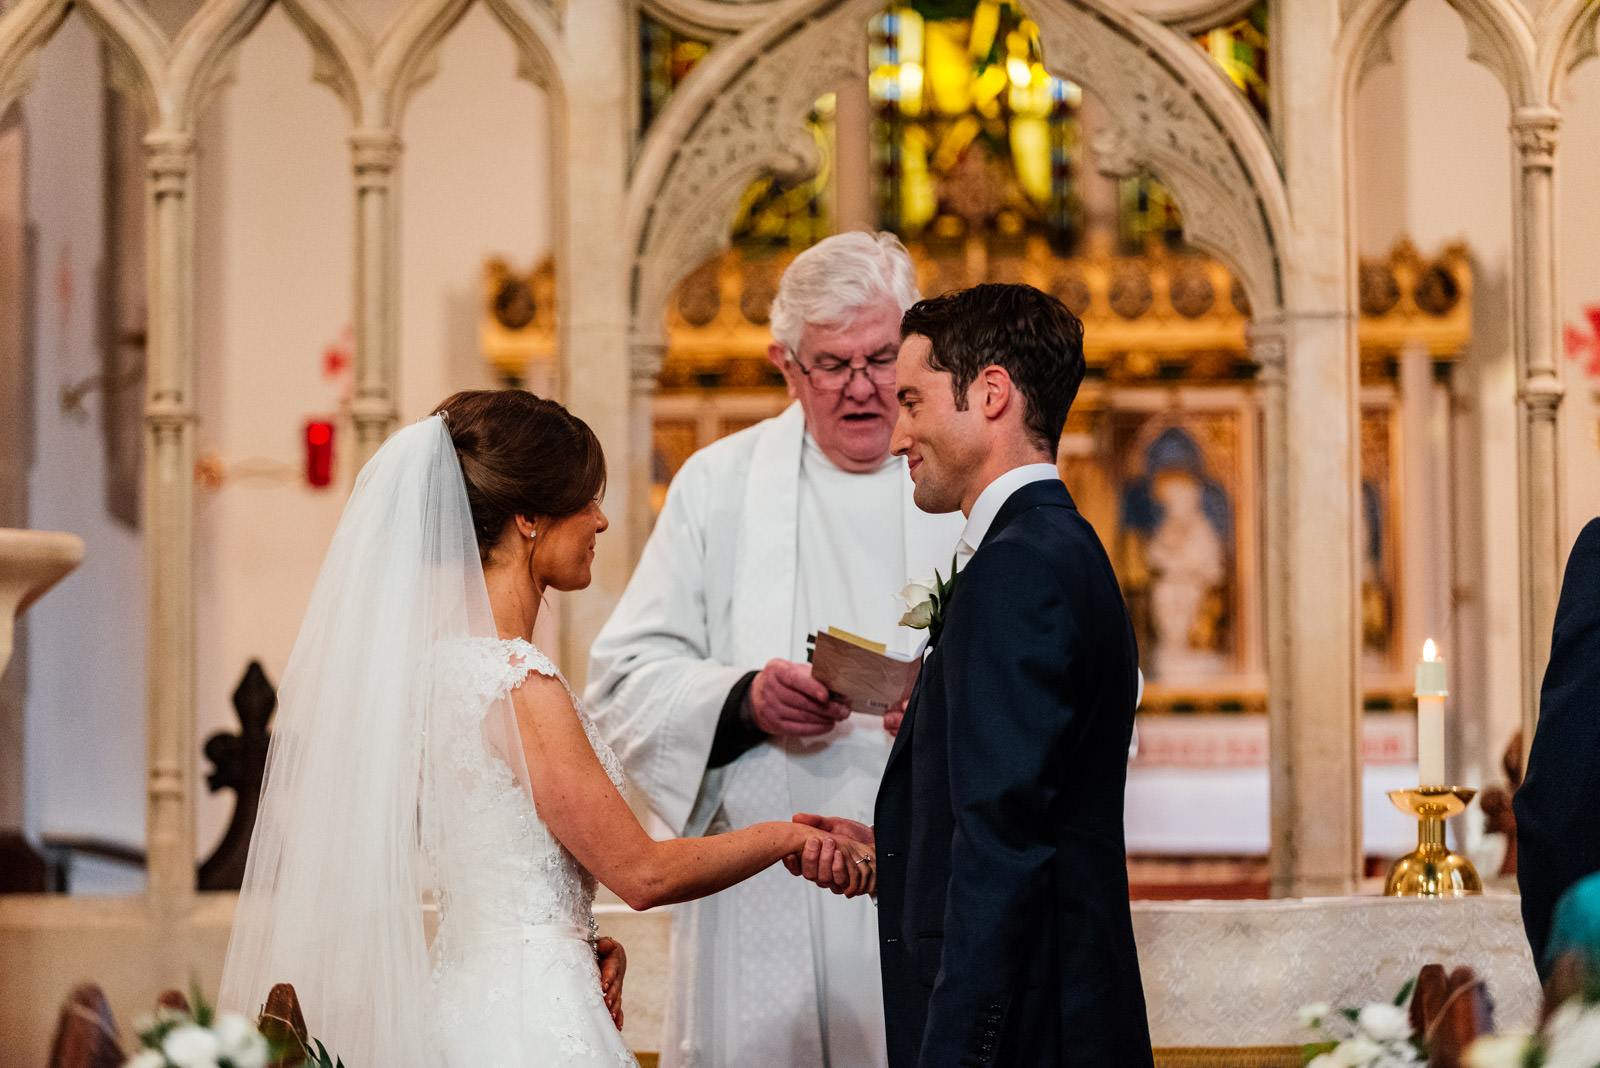 Church ceremony exchanging vows